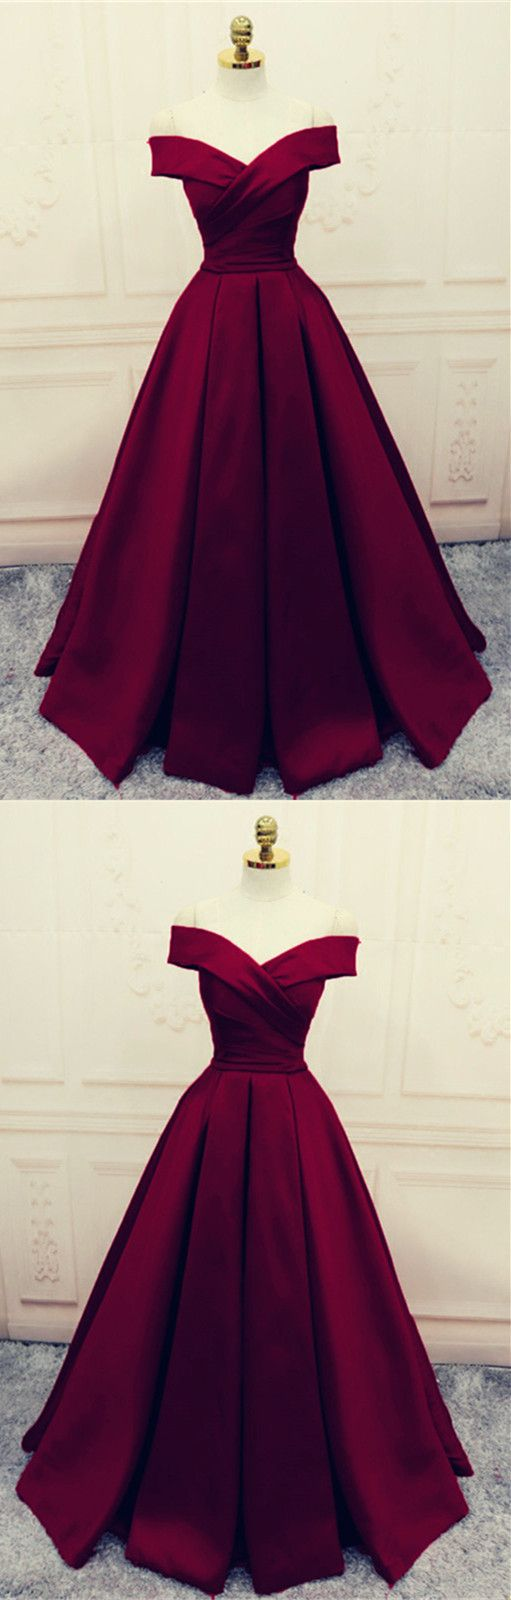 Simple vneck off shoulder prom dresses long evening gowns debut